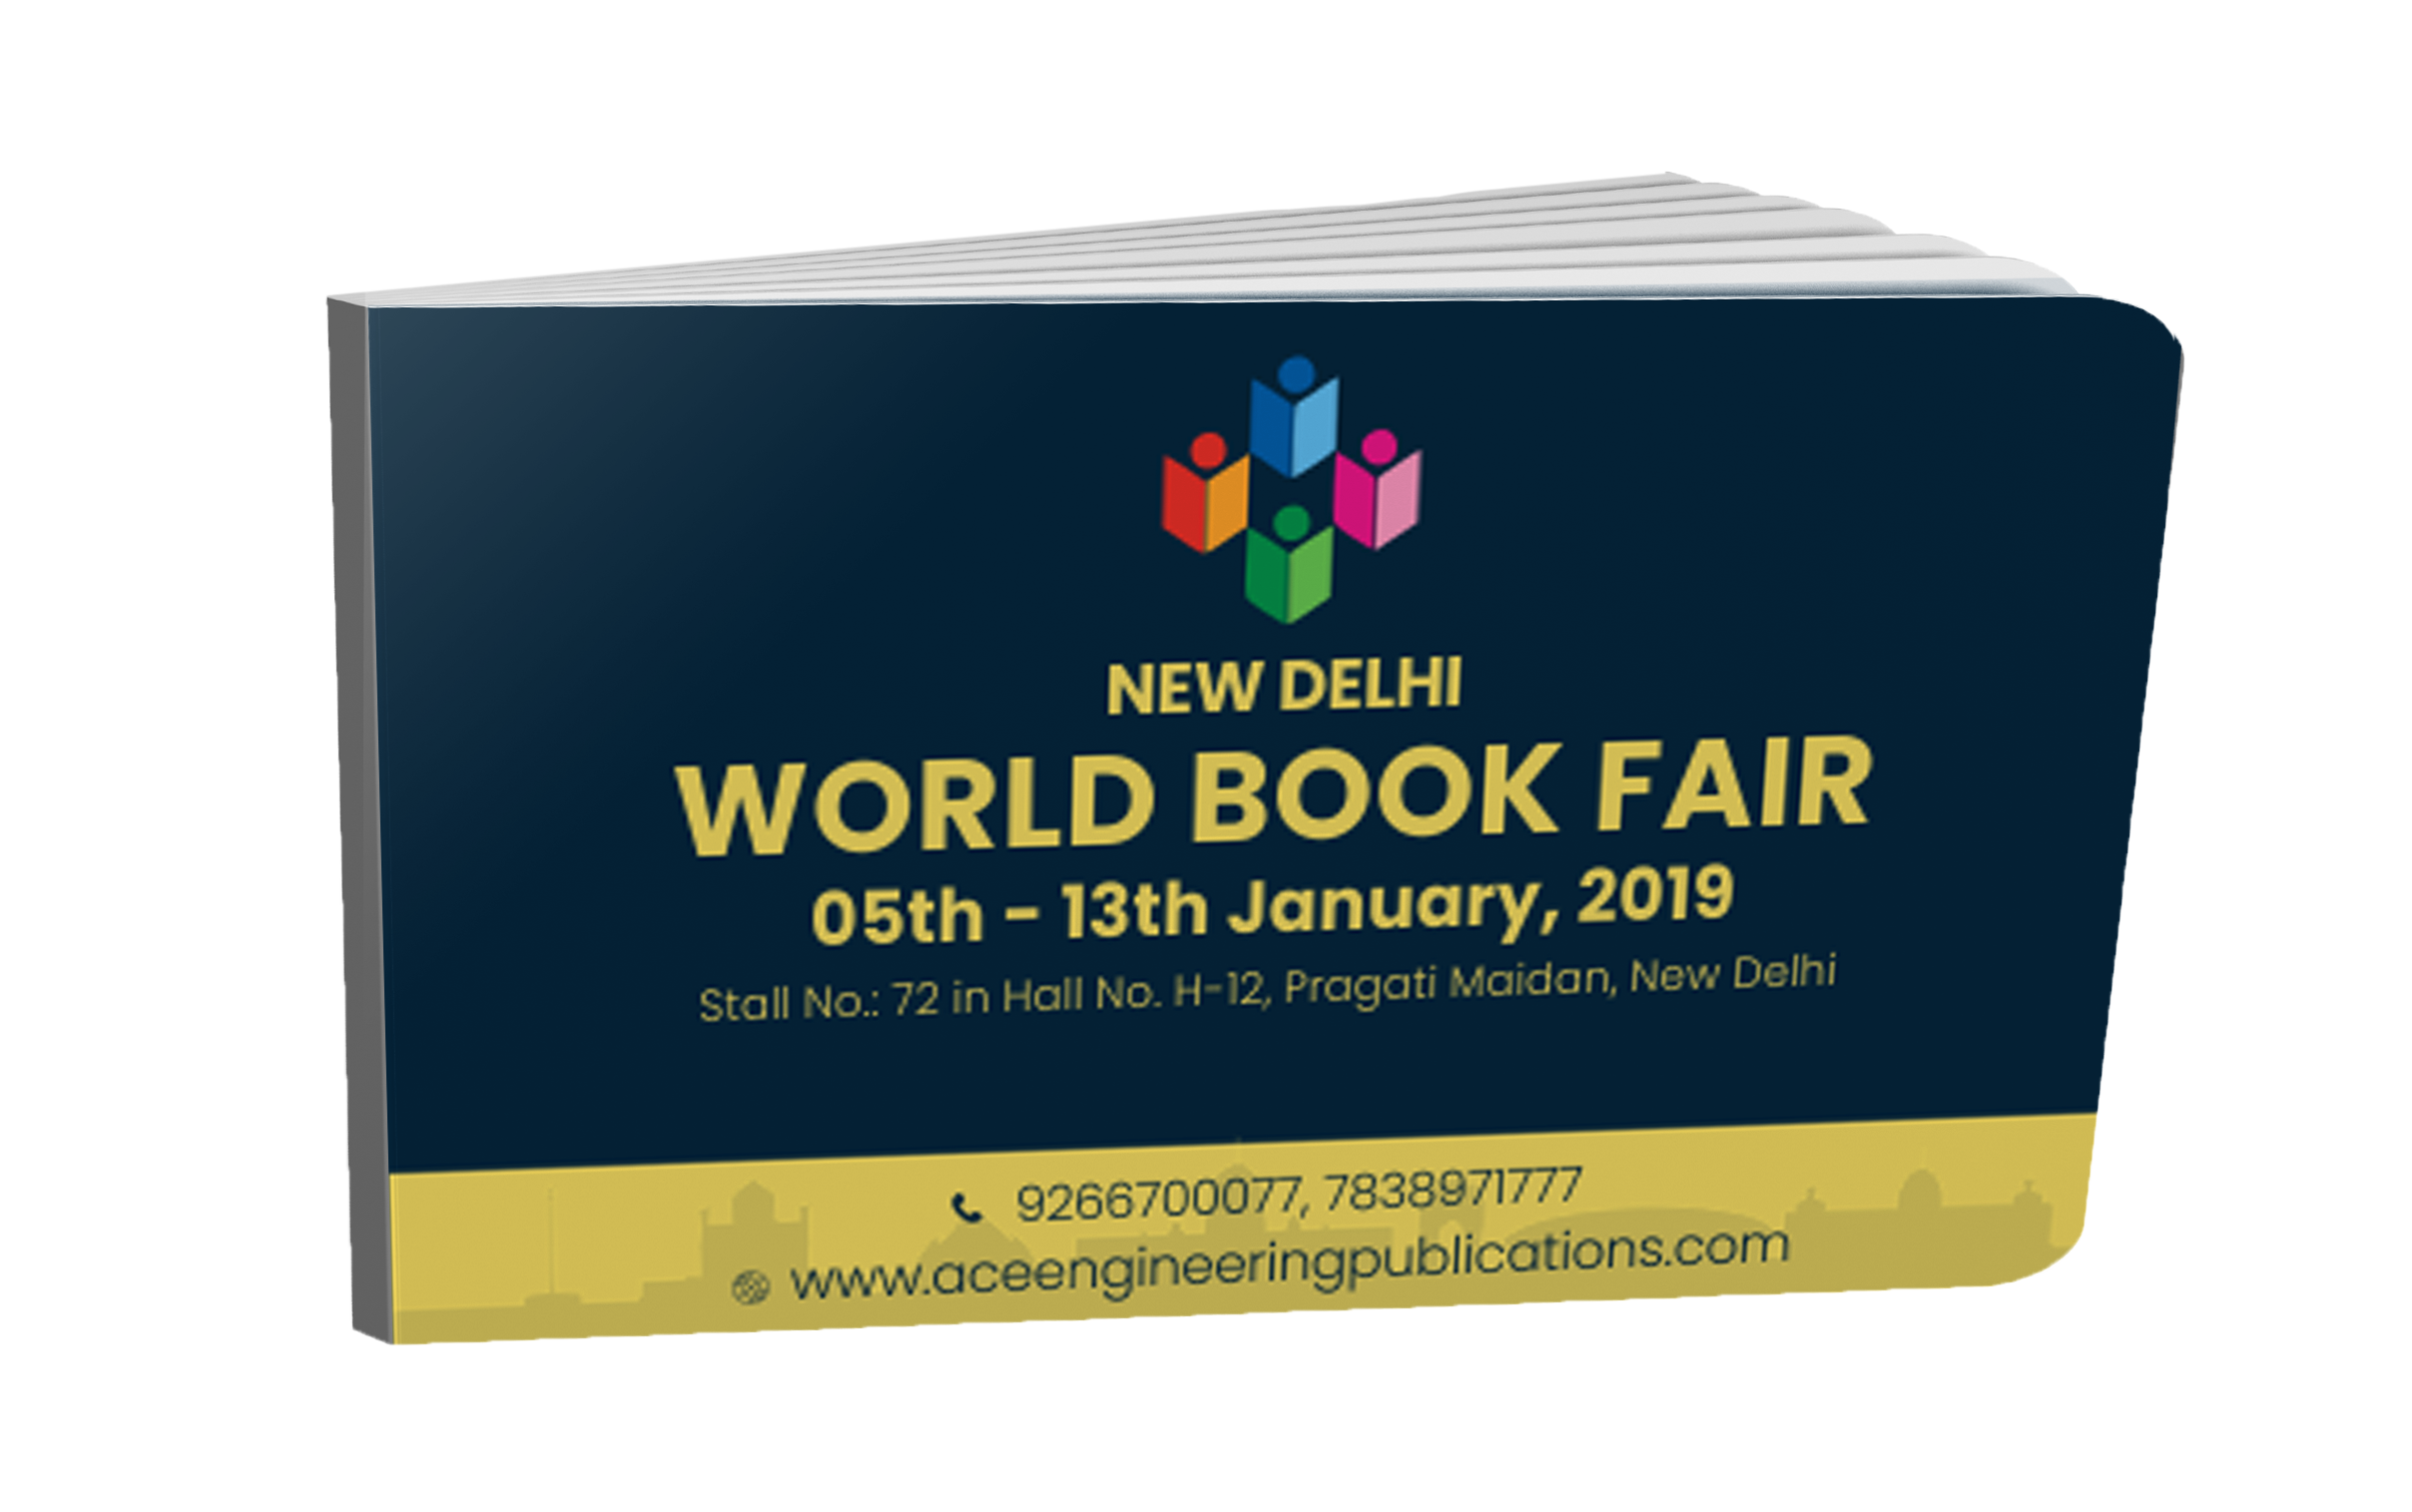 World Book Fair @ delhi